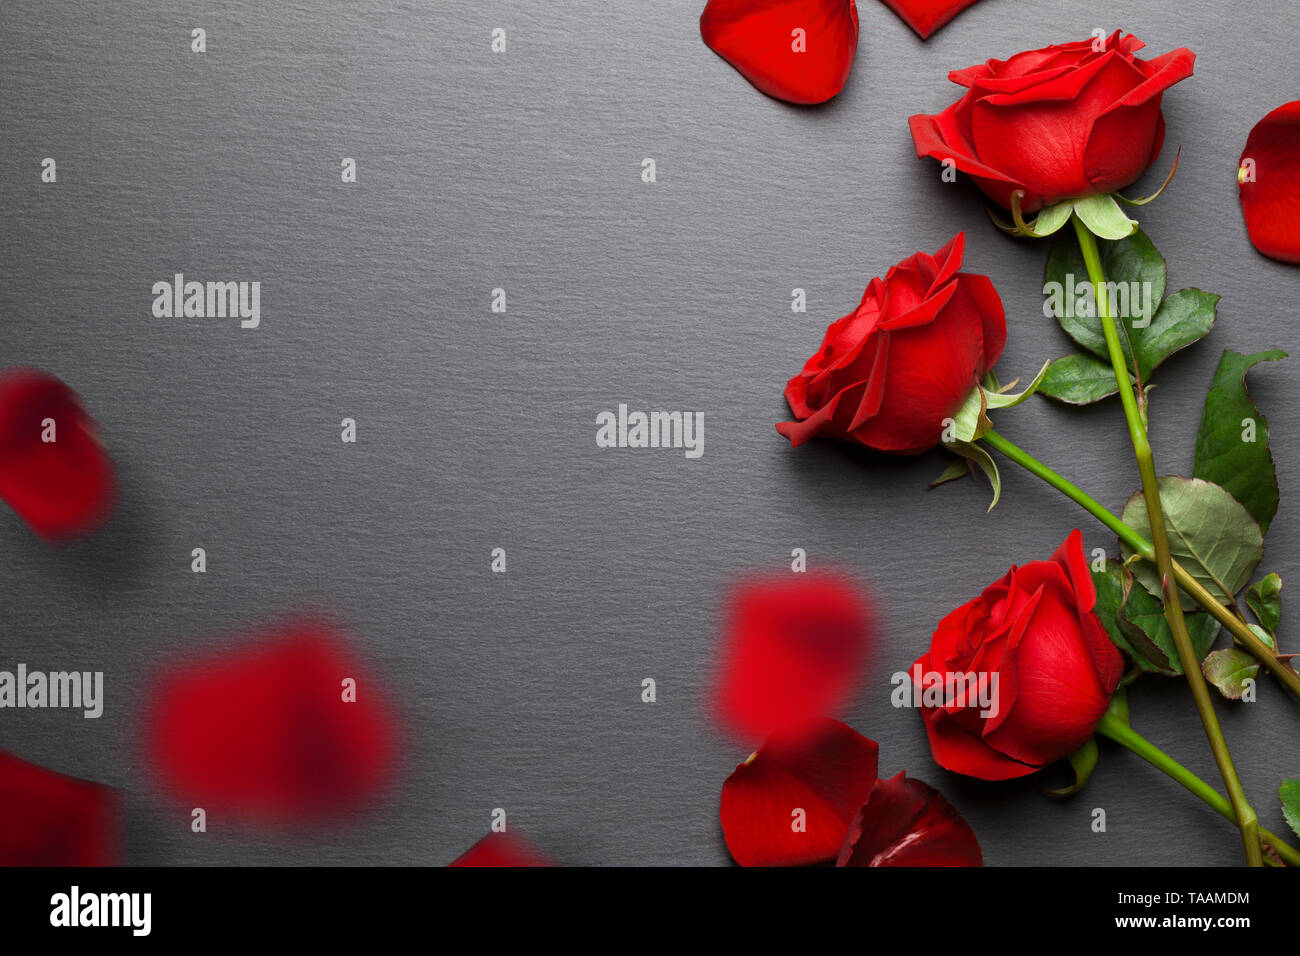 Red roses background with falling petals - Stock Image